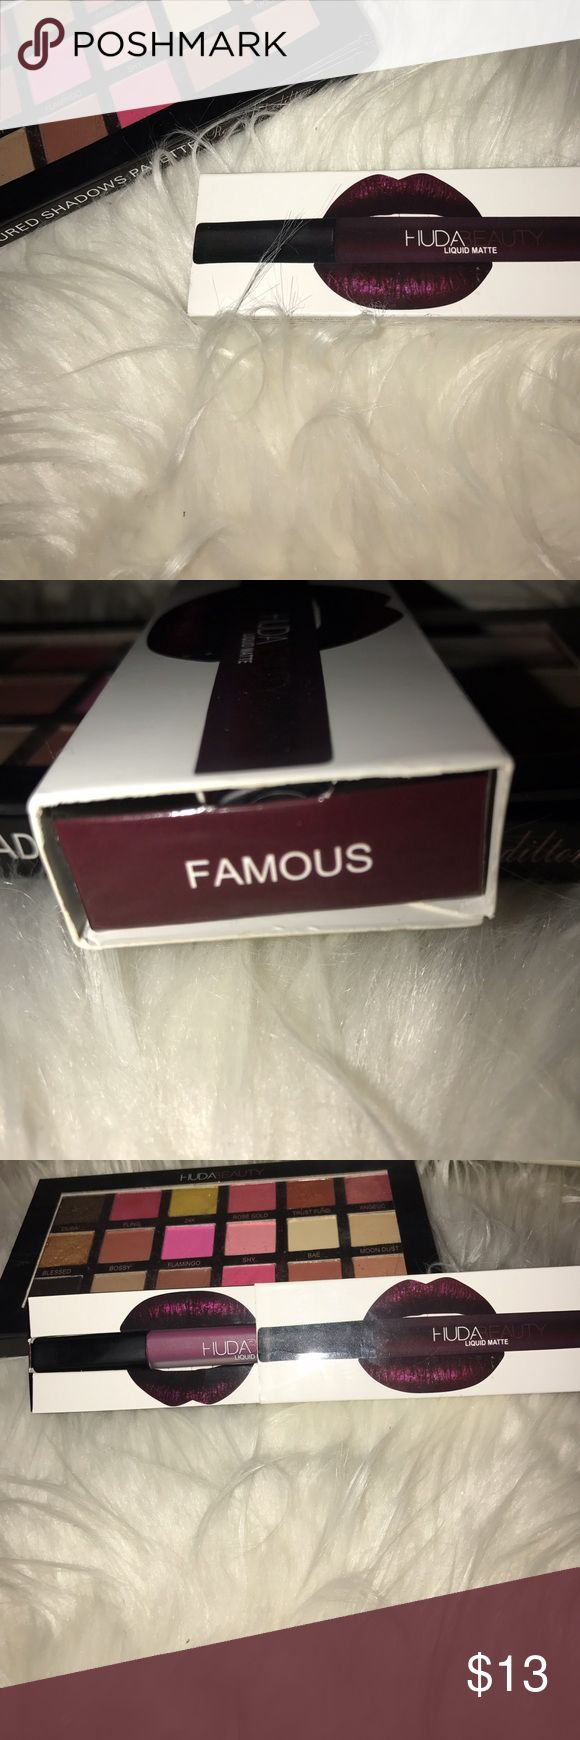 Huda Beauty Matte lipstick in Famous ✨ Got this as a gift, has only been used once. huda beauty Makeup Lipstick